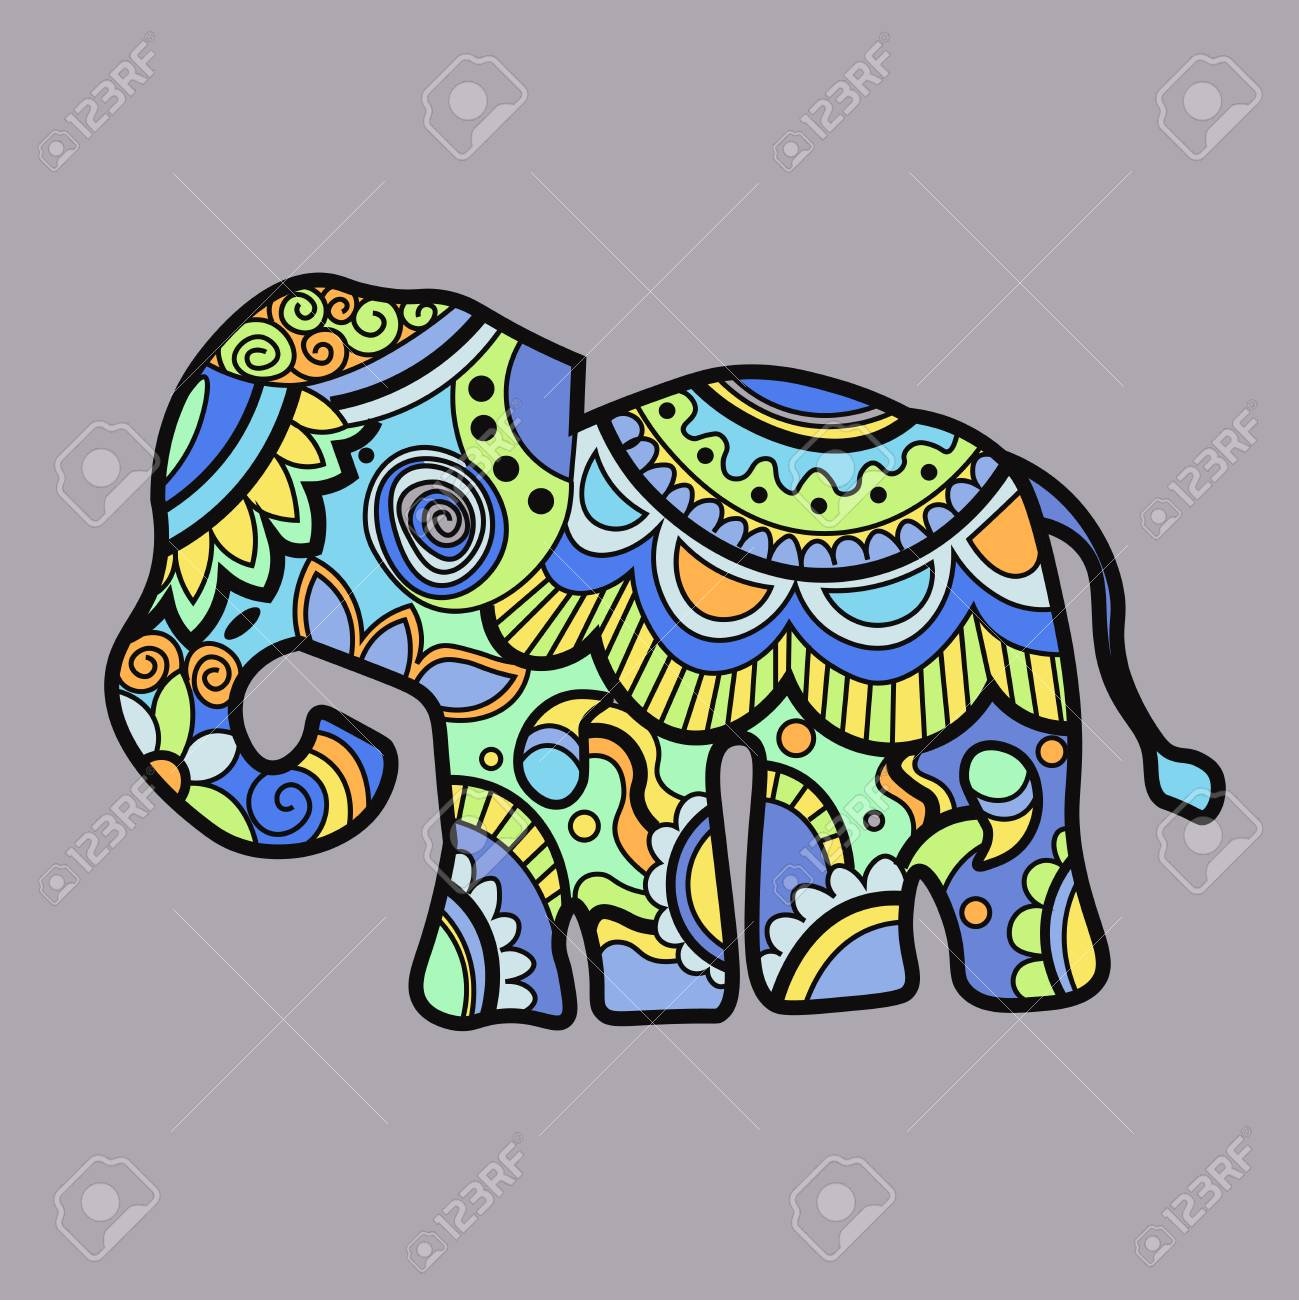 f3804c6a Mehndi colored traditional indian ethnic symbol with elephant. Good for  henna design, fabric,